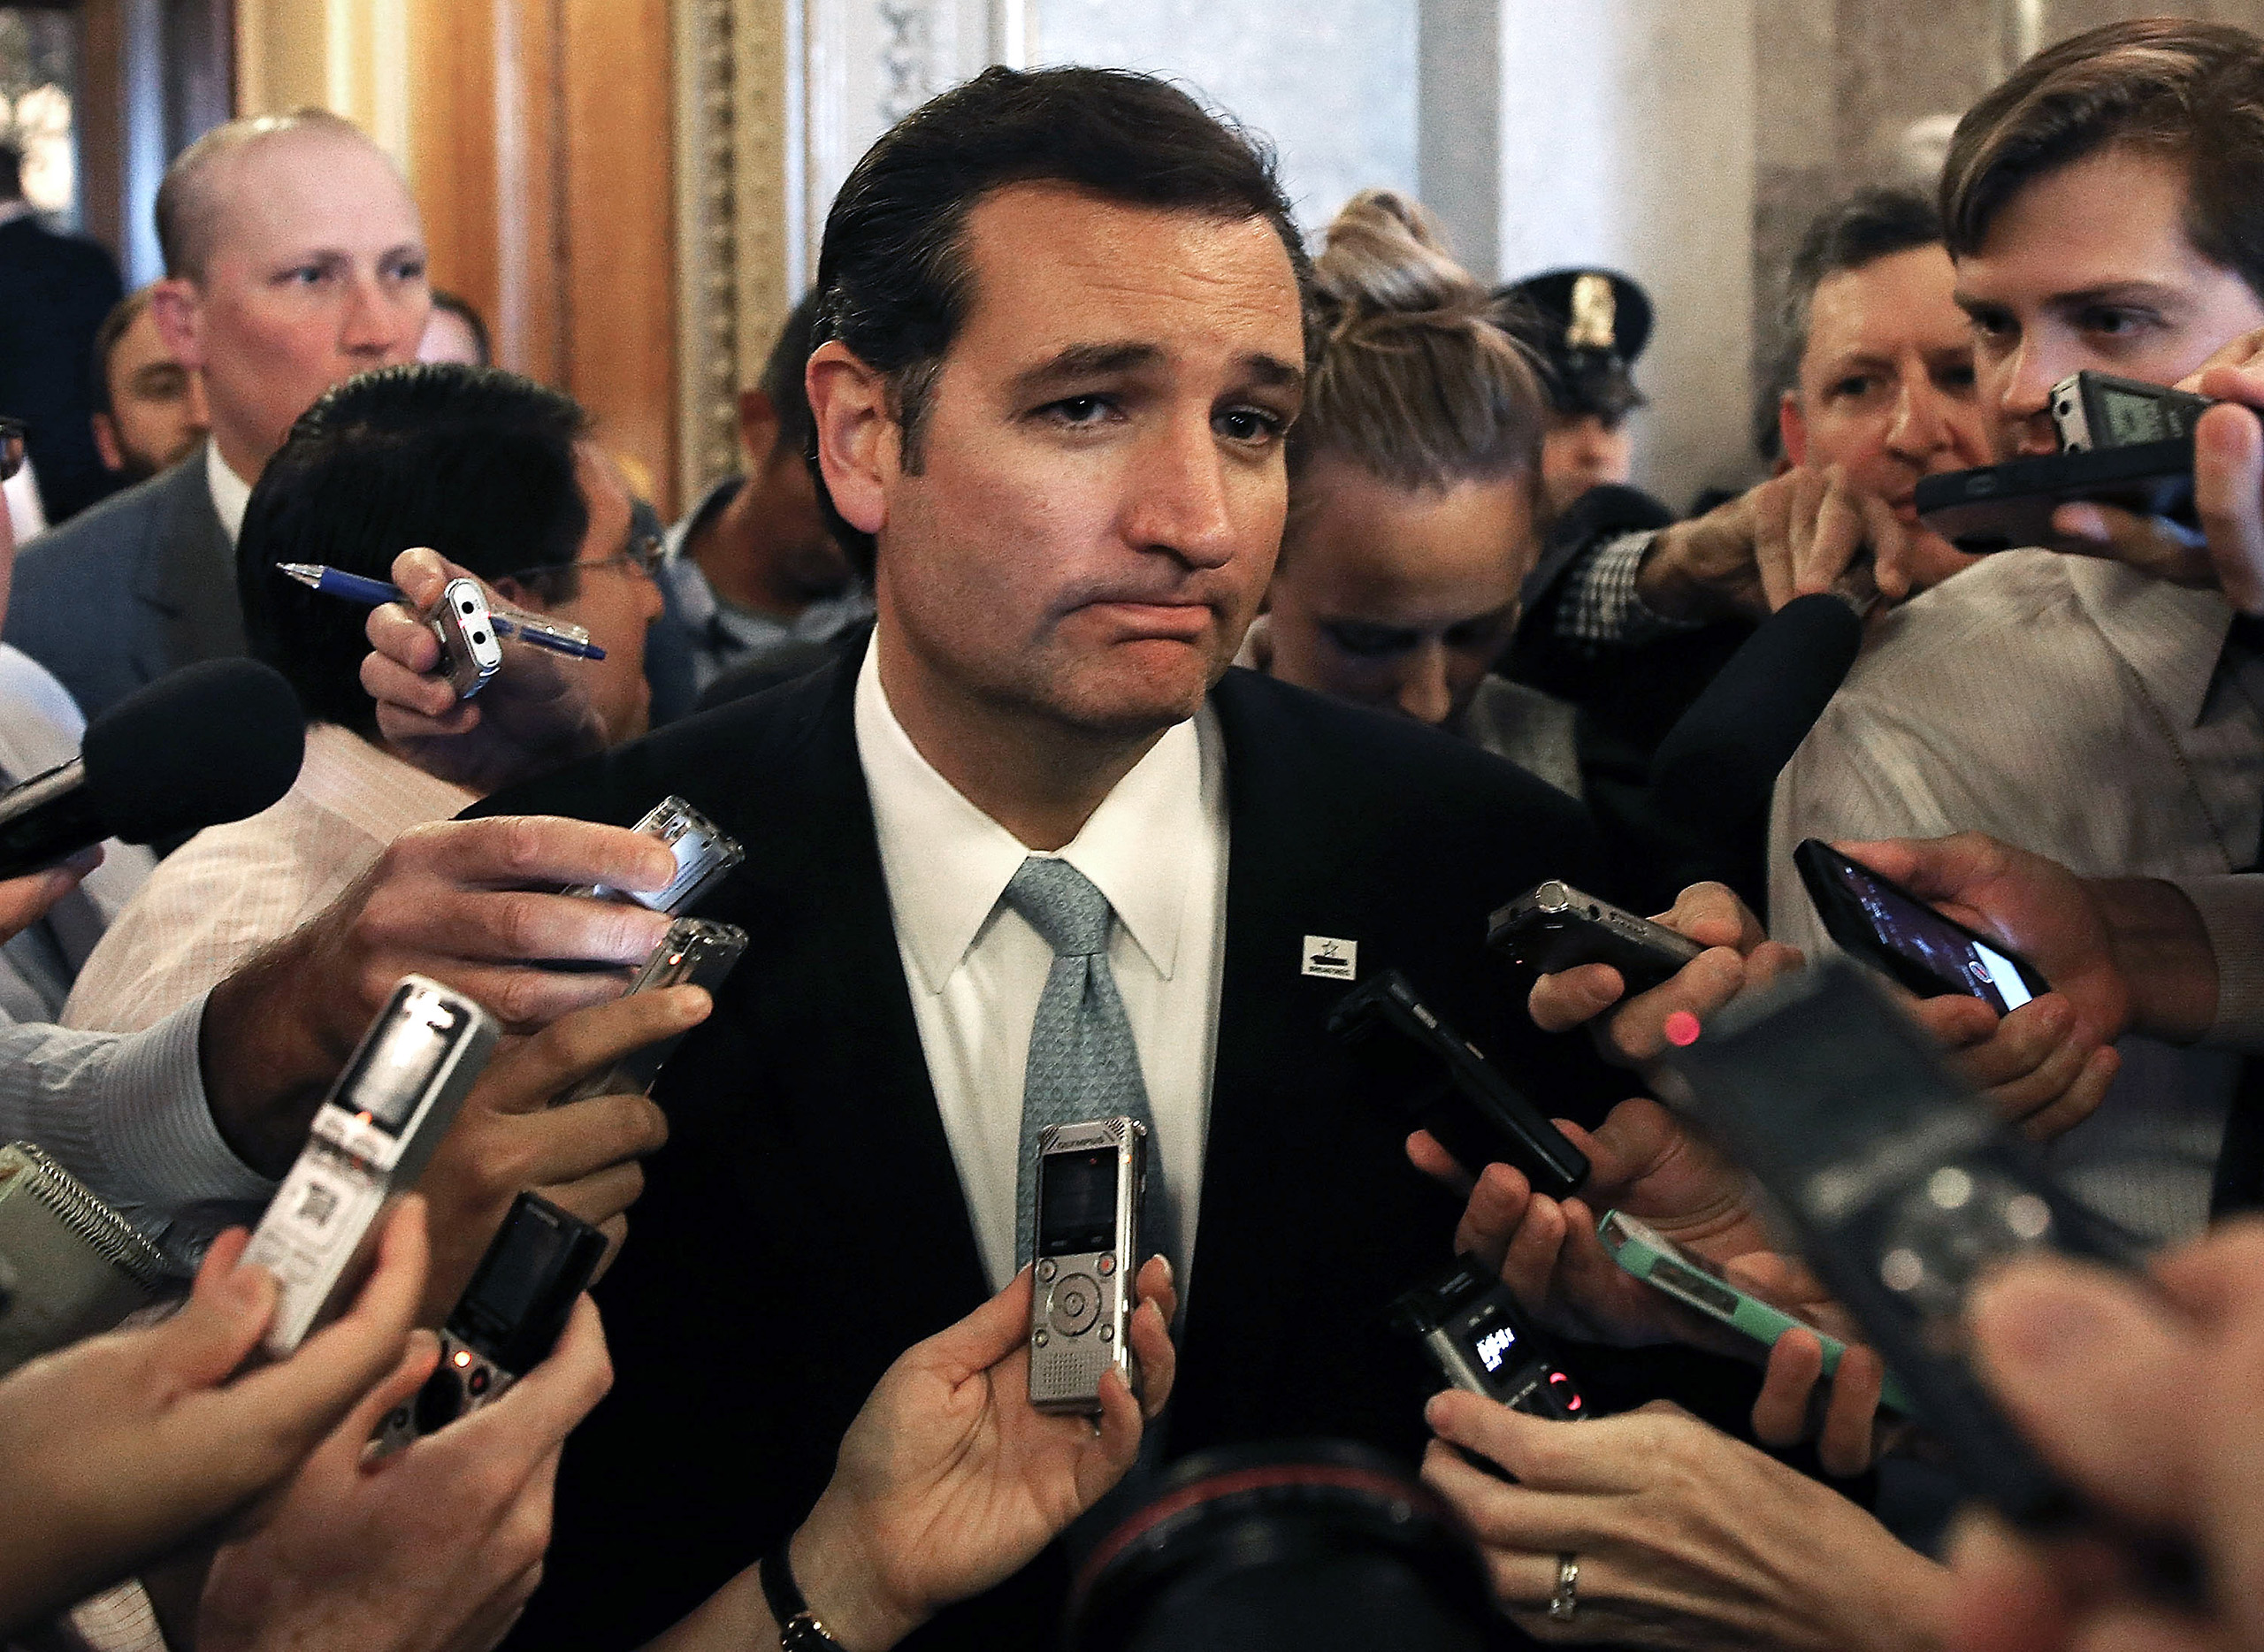 Sen. Ted Cruz speaks to reporters after his marathon speech on the Senate floor for more than 21 hours against Obamacare, preceding a government shutdown, on Capitol Hill in Washington on Sept. 25, 2013.